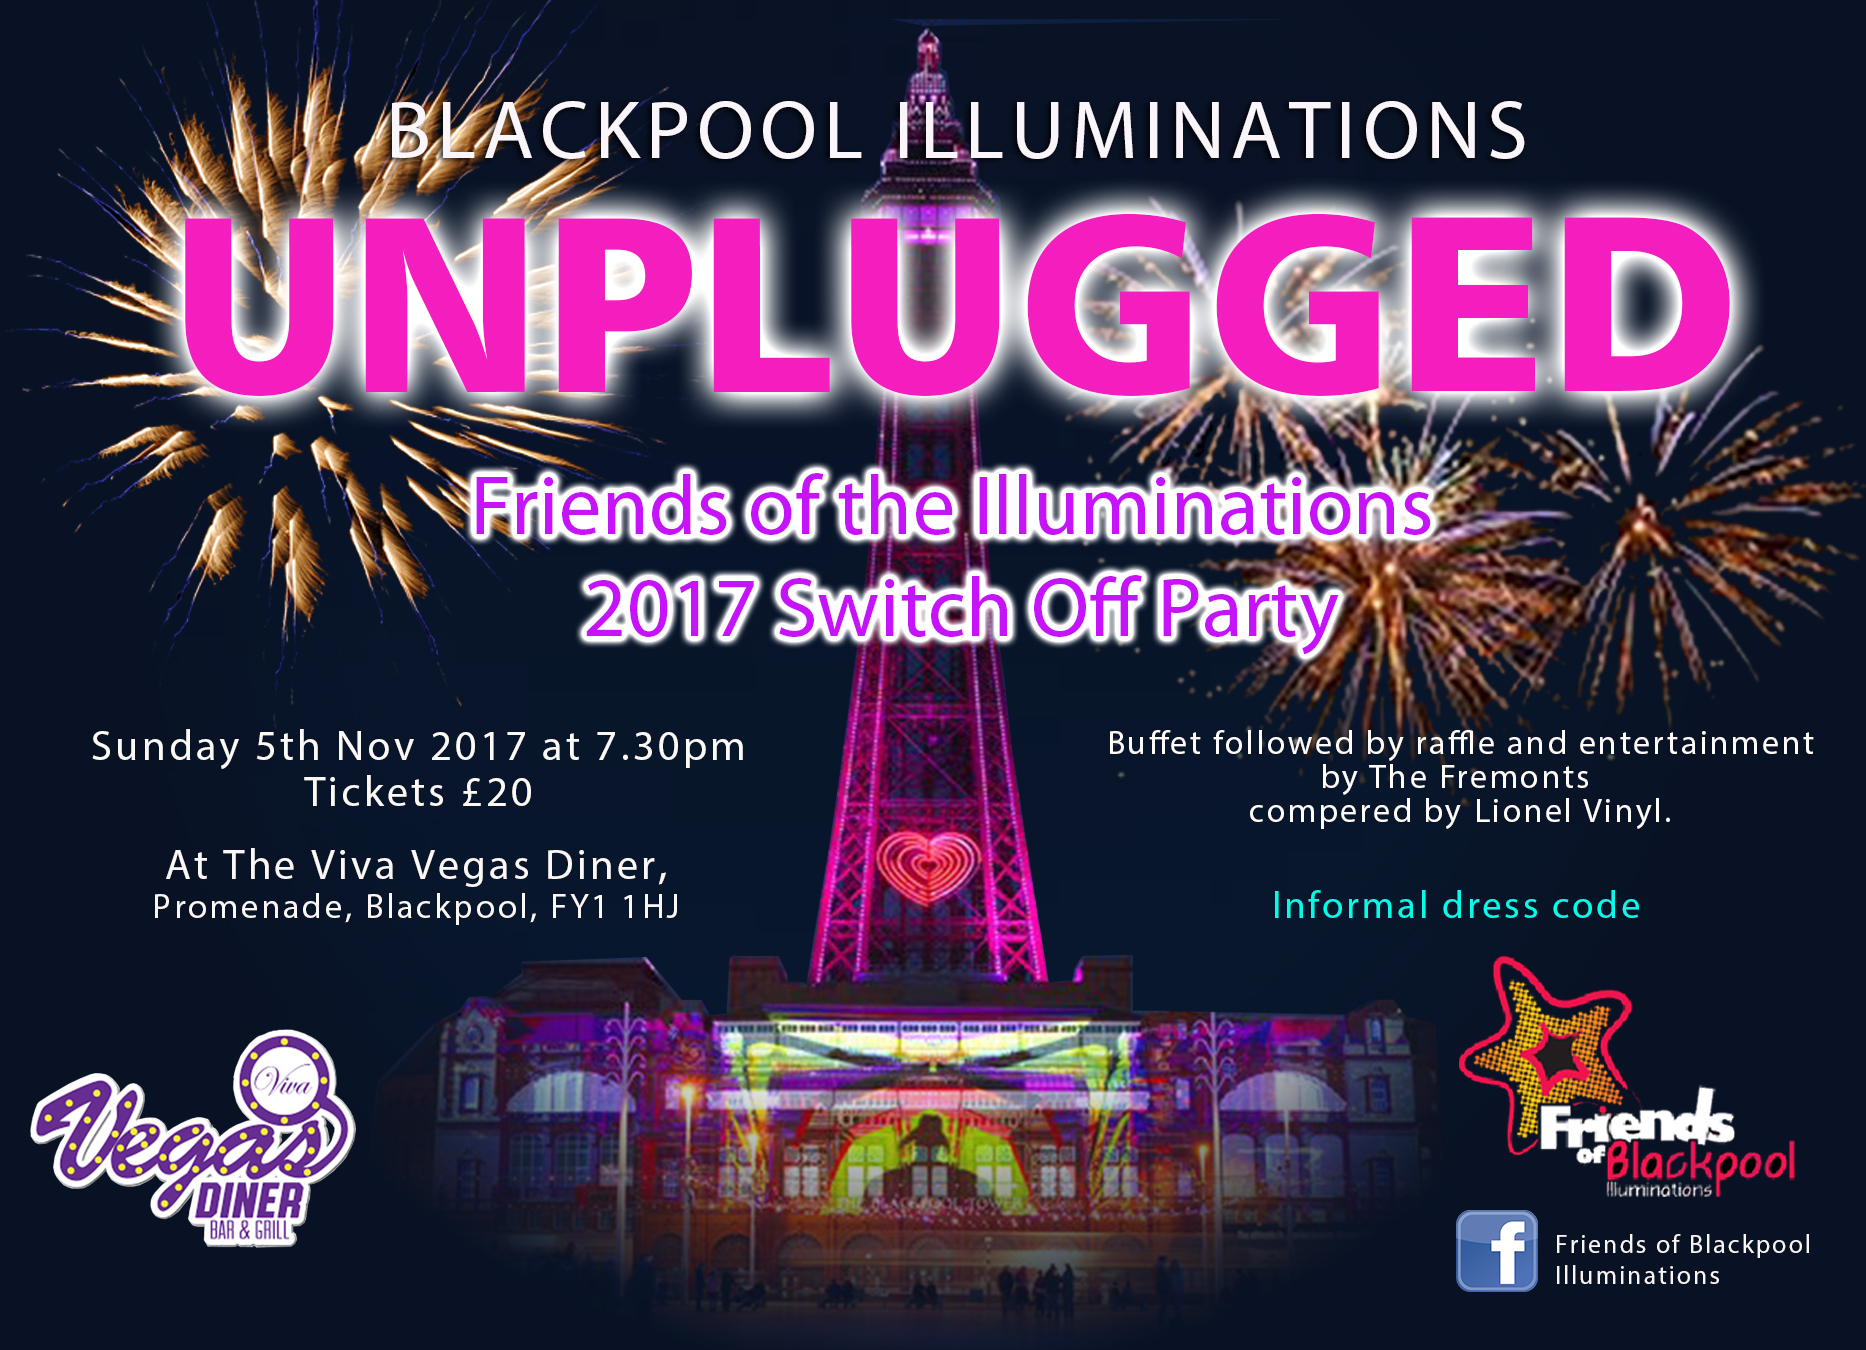 Blackpool Illuminations Unplugged, Switch Off Party 2017